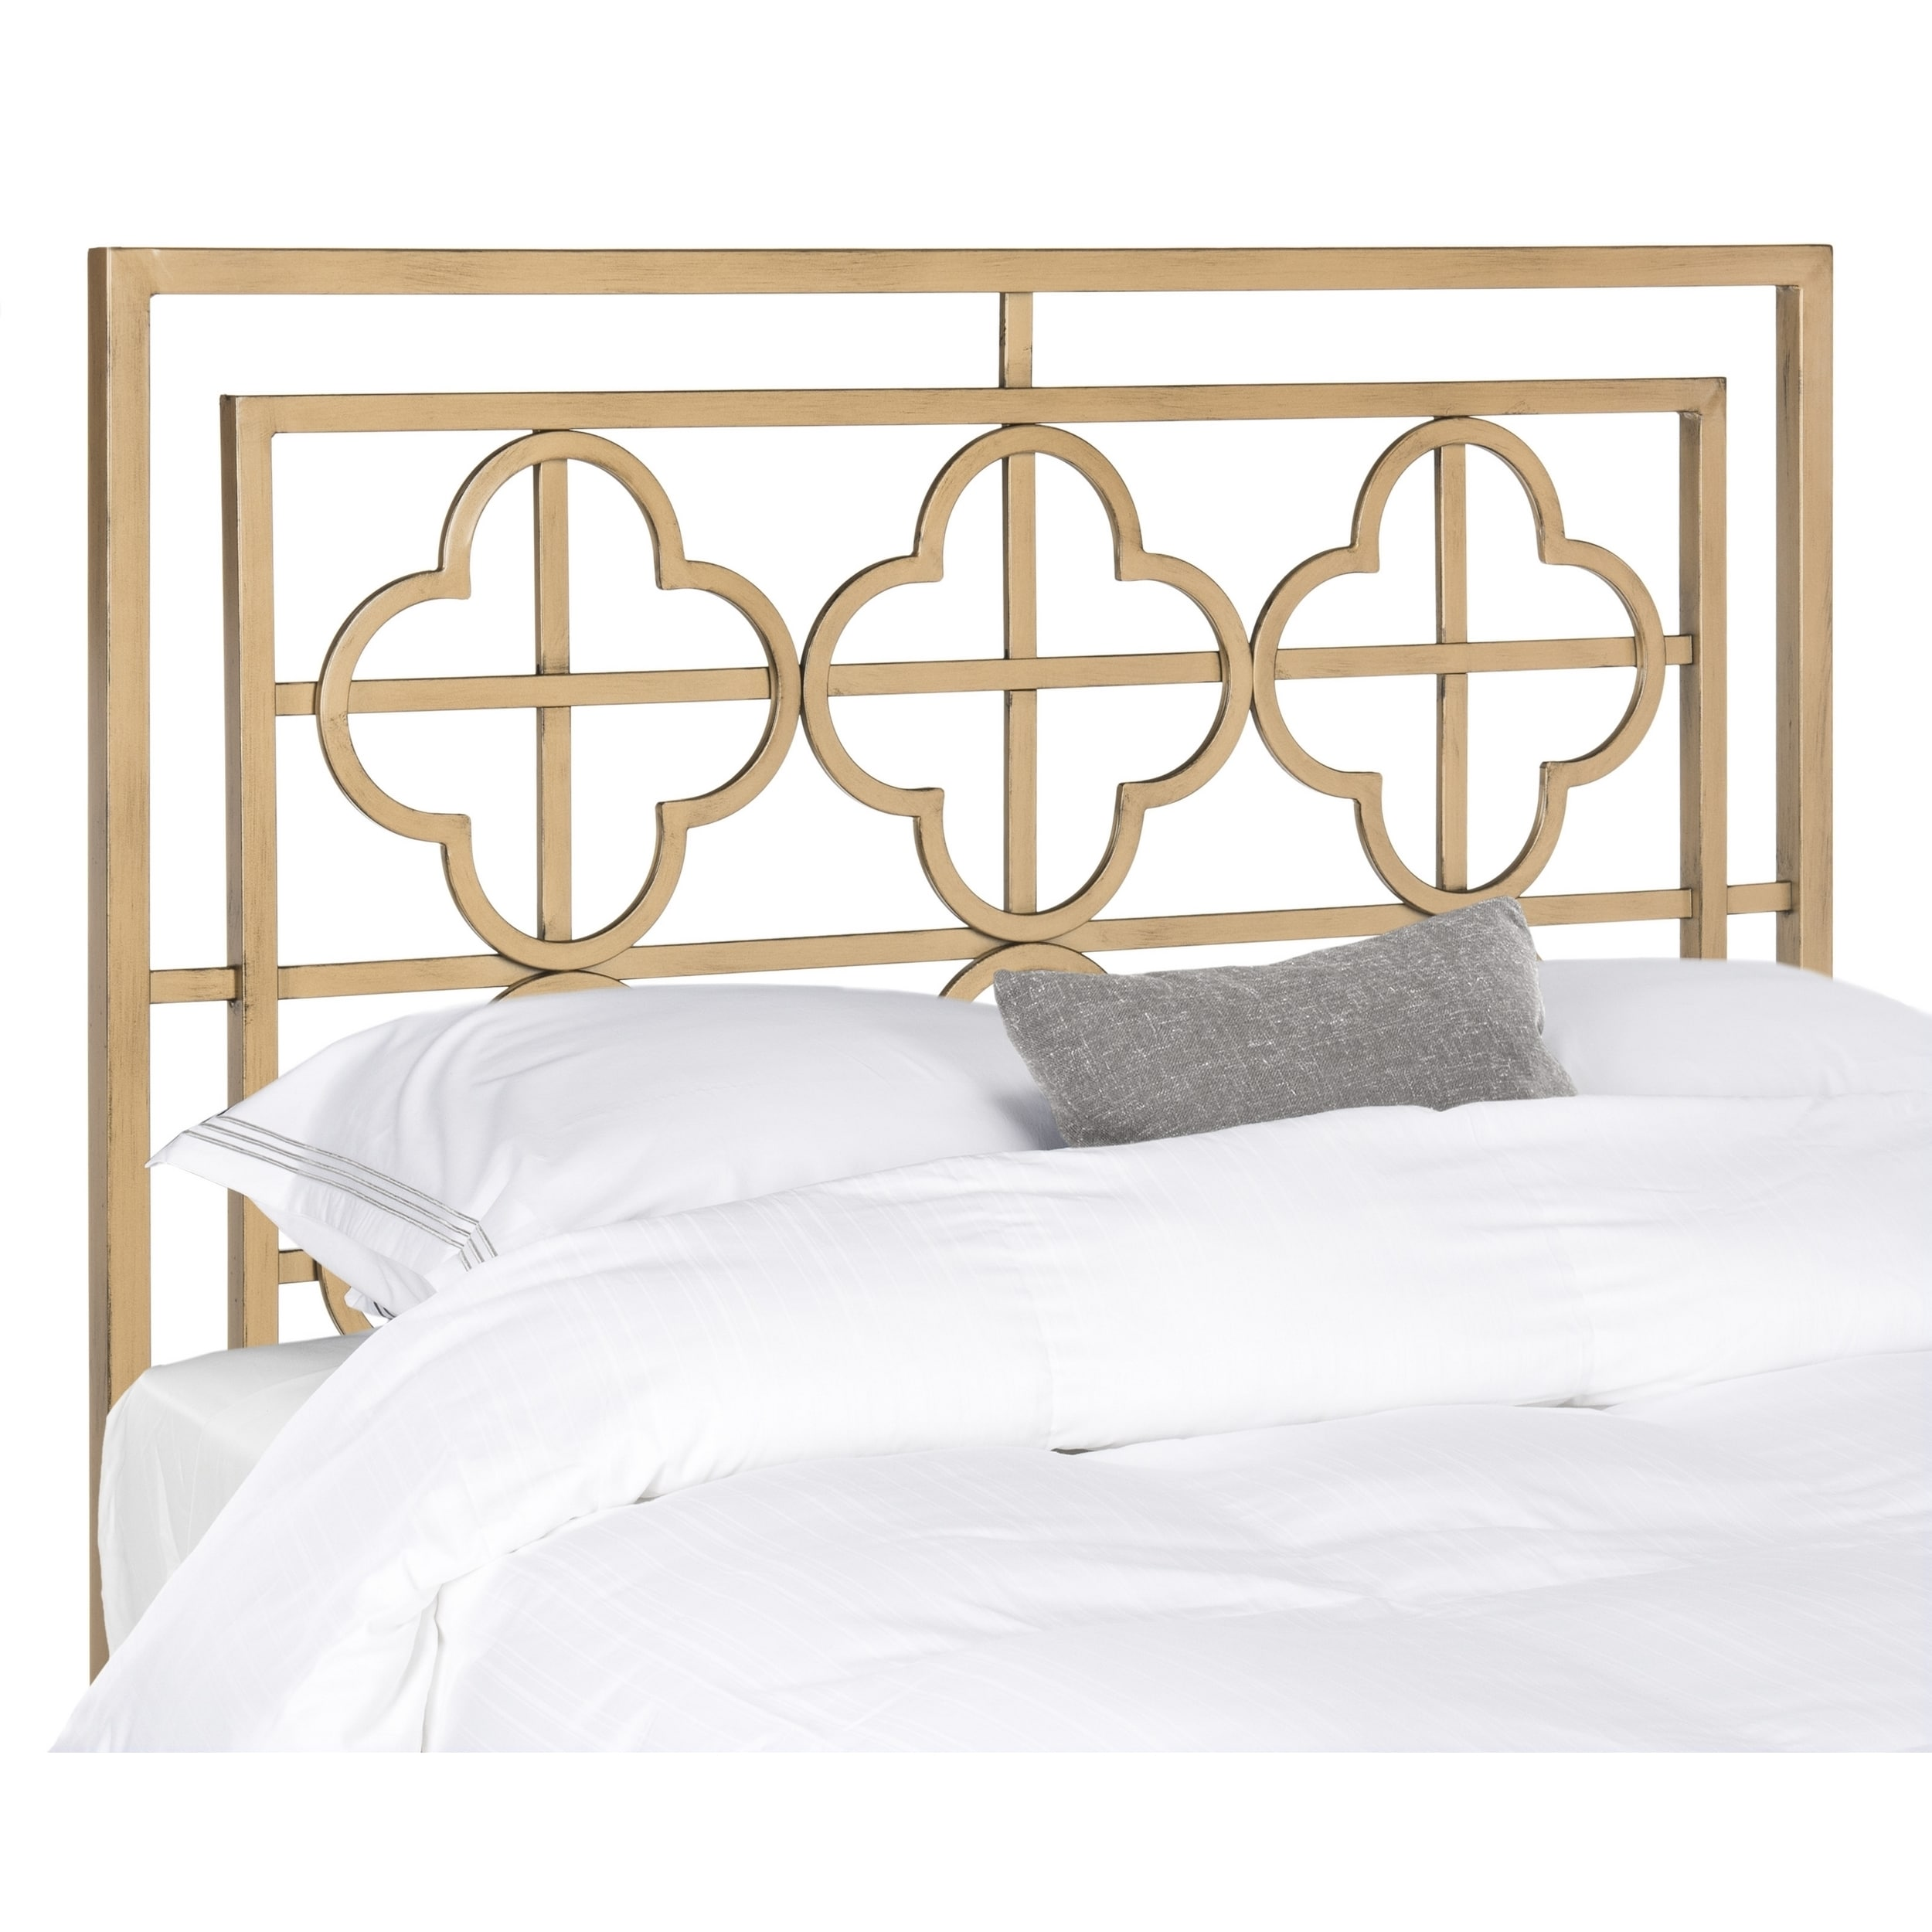 basket bedding king lucinda fascinating metallic charming including fox bedroom images paint medal ideas gold antique and headboard white d bed metal collection furniture